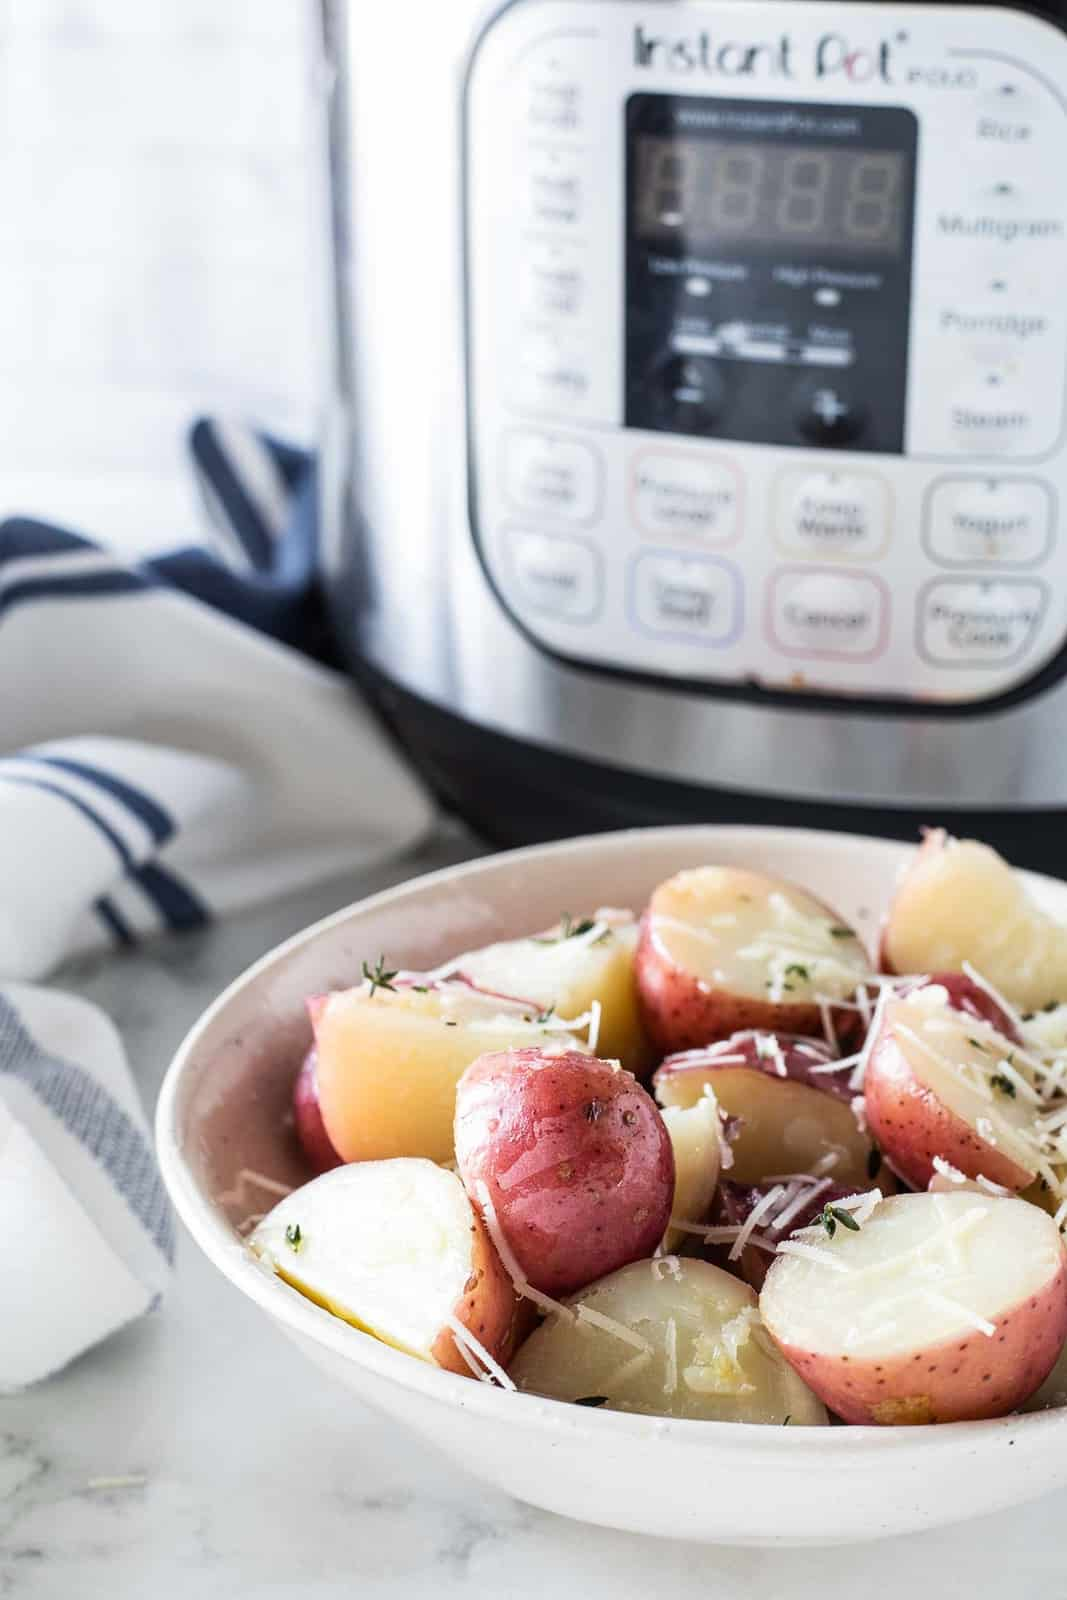 Instant pot red potatoes in a serving bowl.